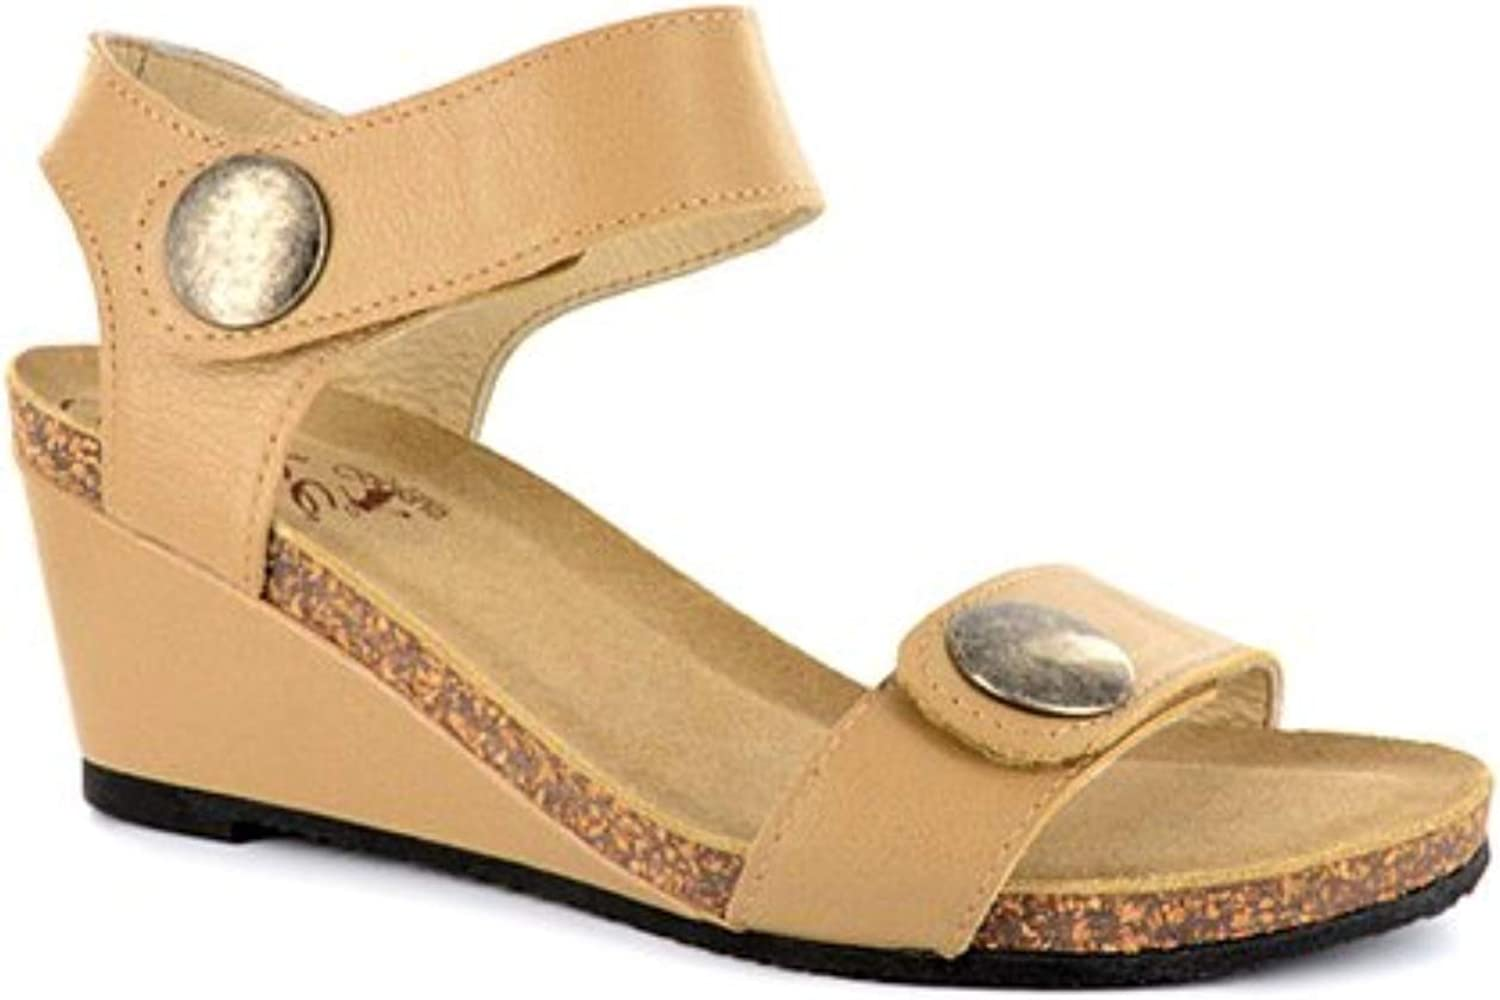 Corkys Hobby Comfortable Wedge Sandals